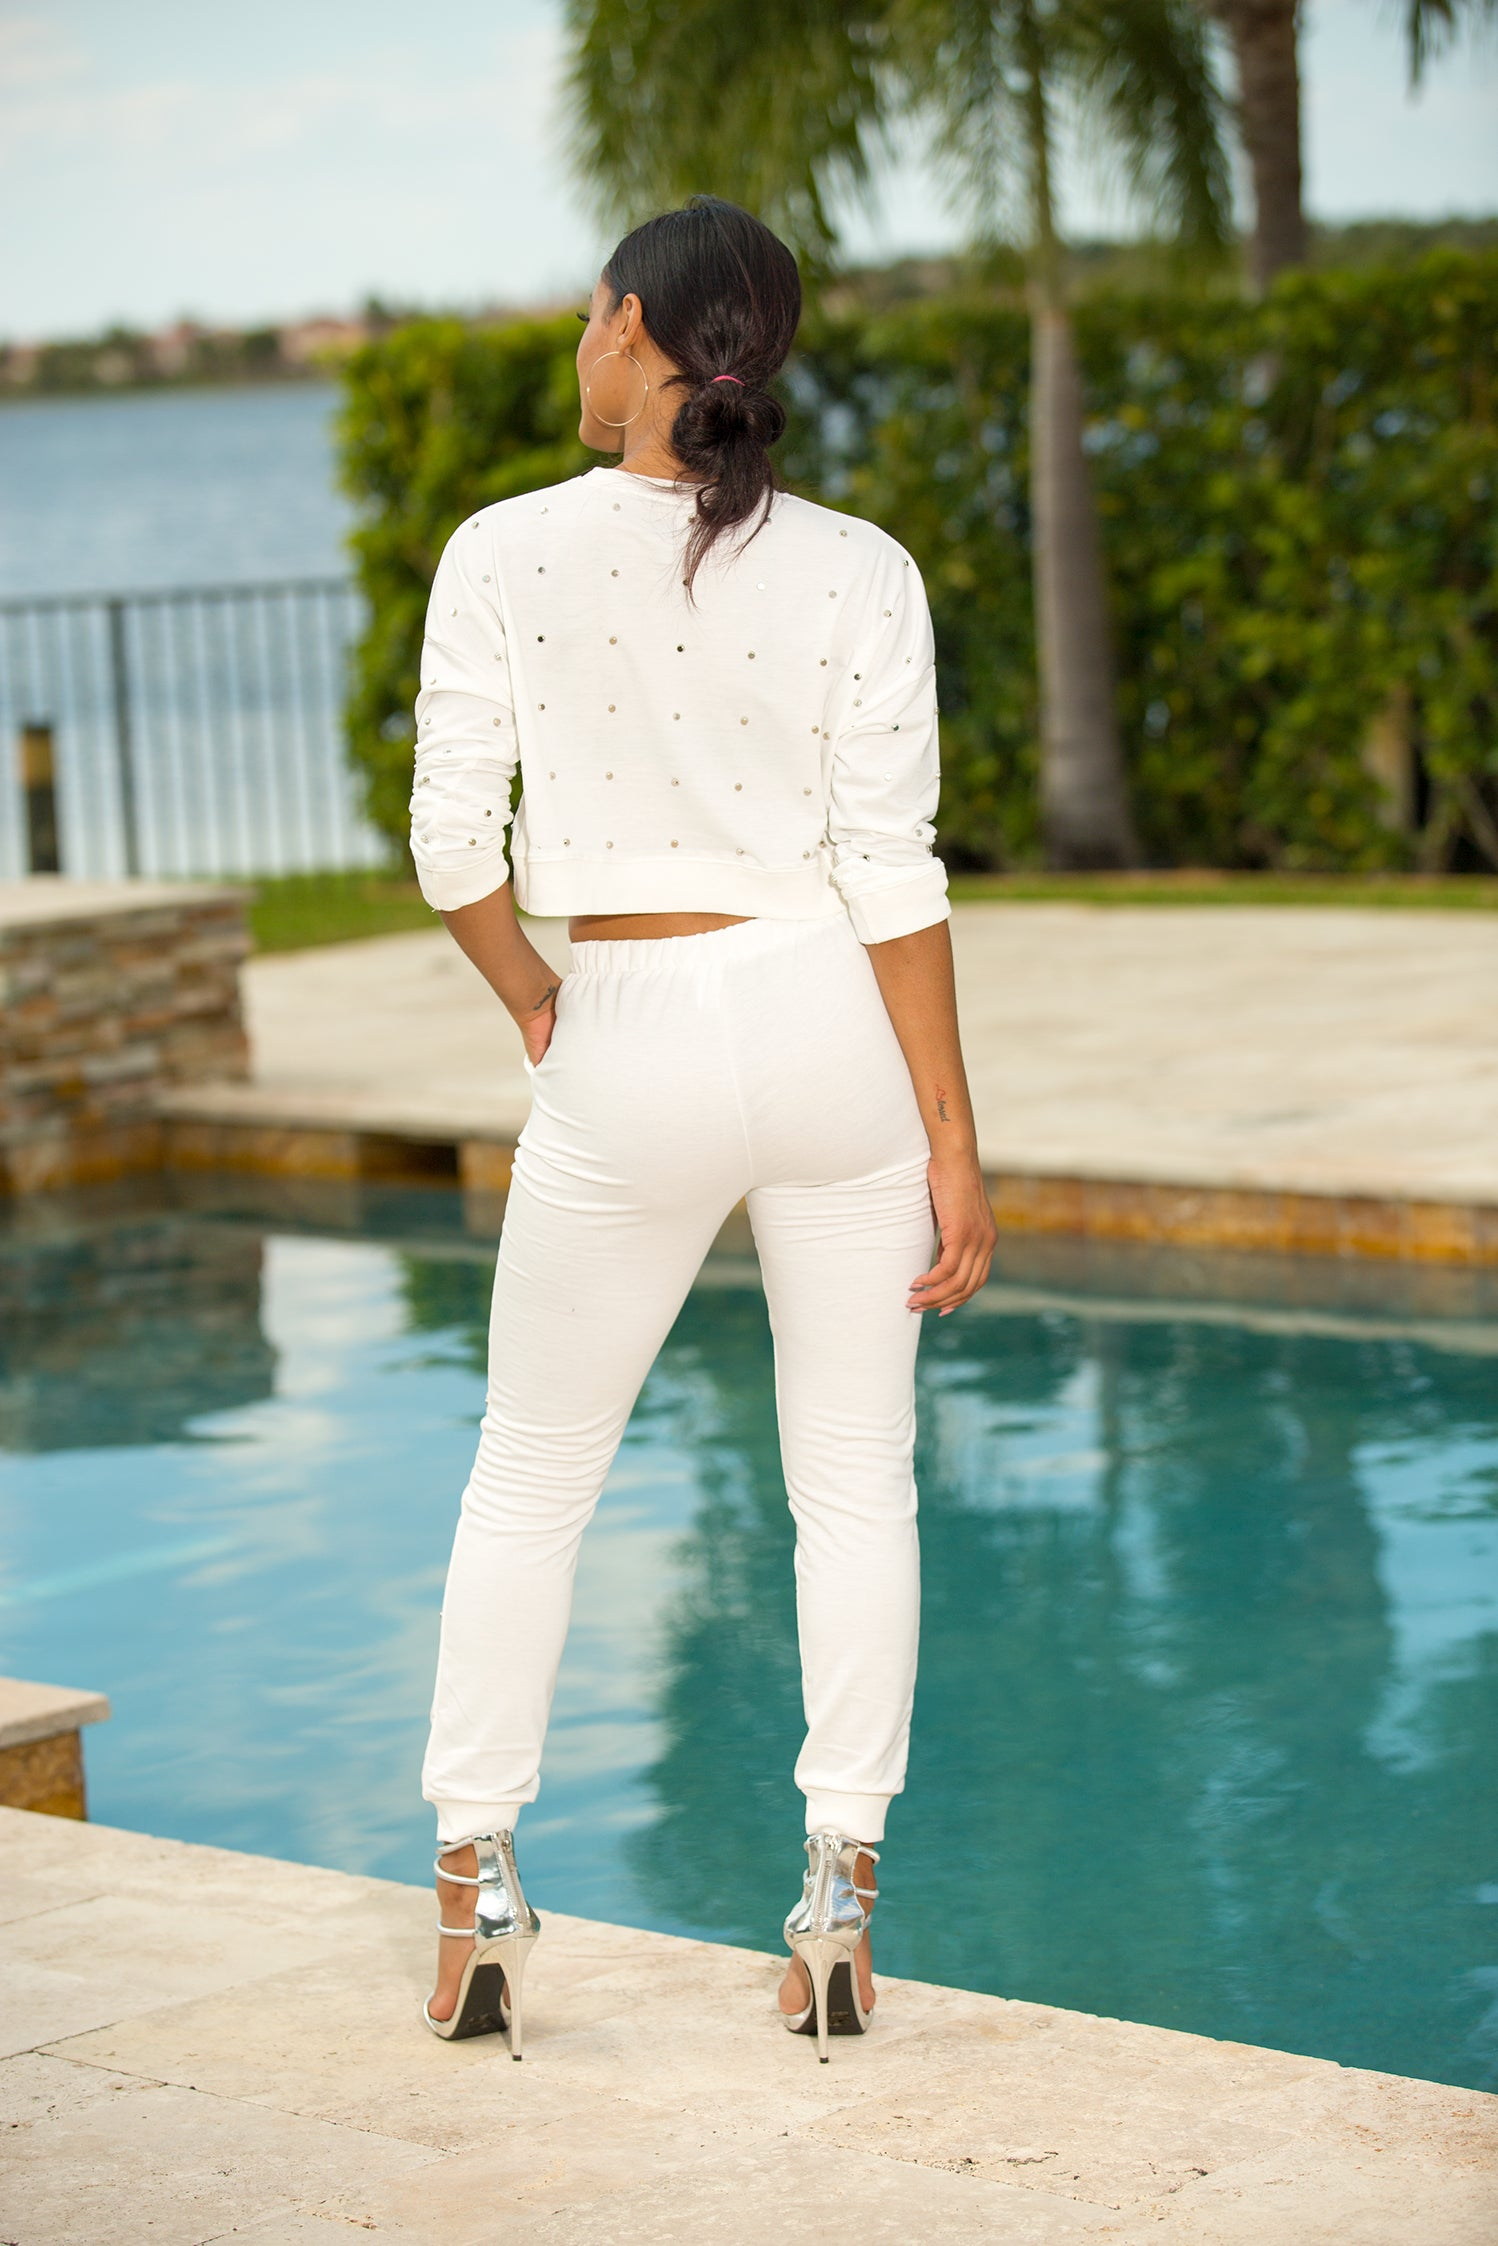 Lyra - Silver Them All Over Pant Set - Semai House Of fashion